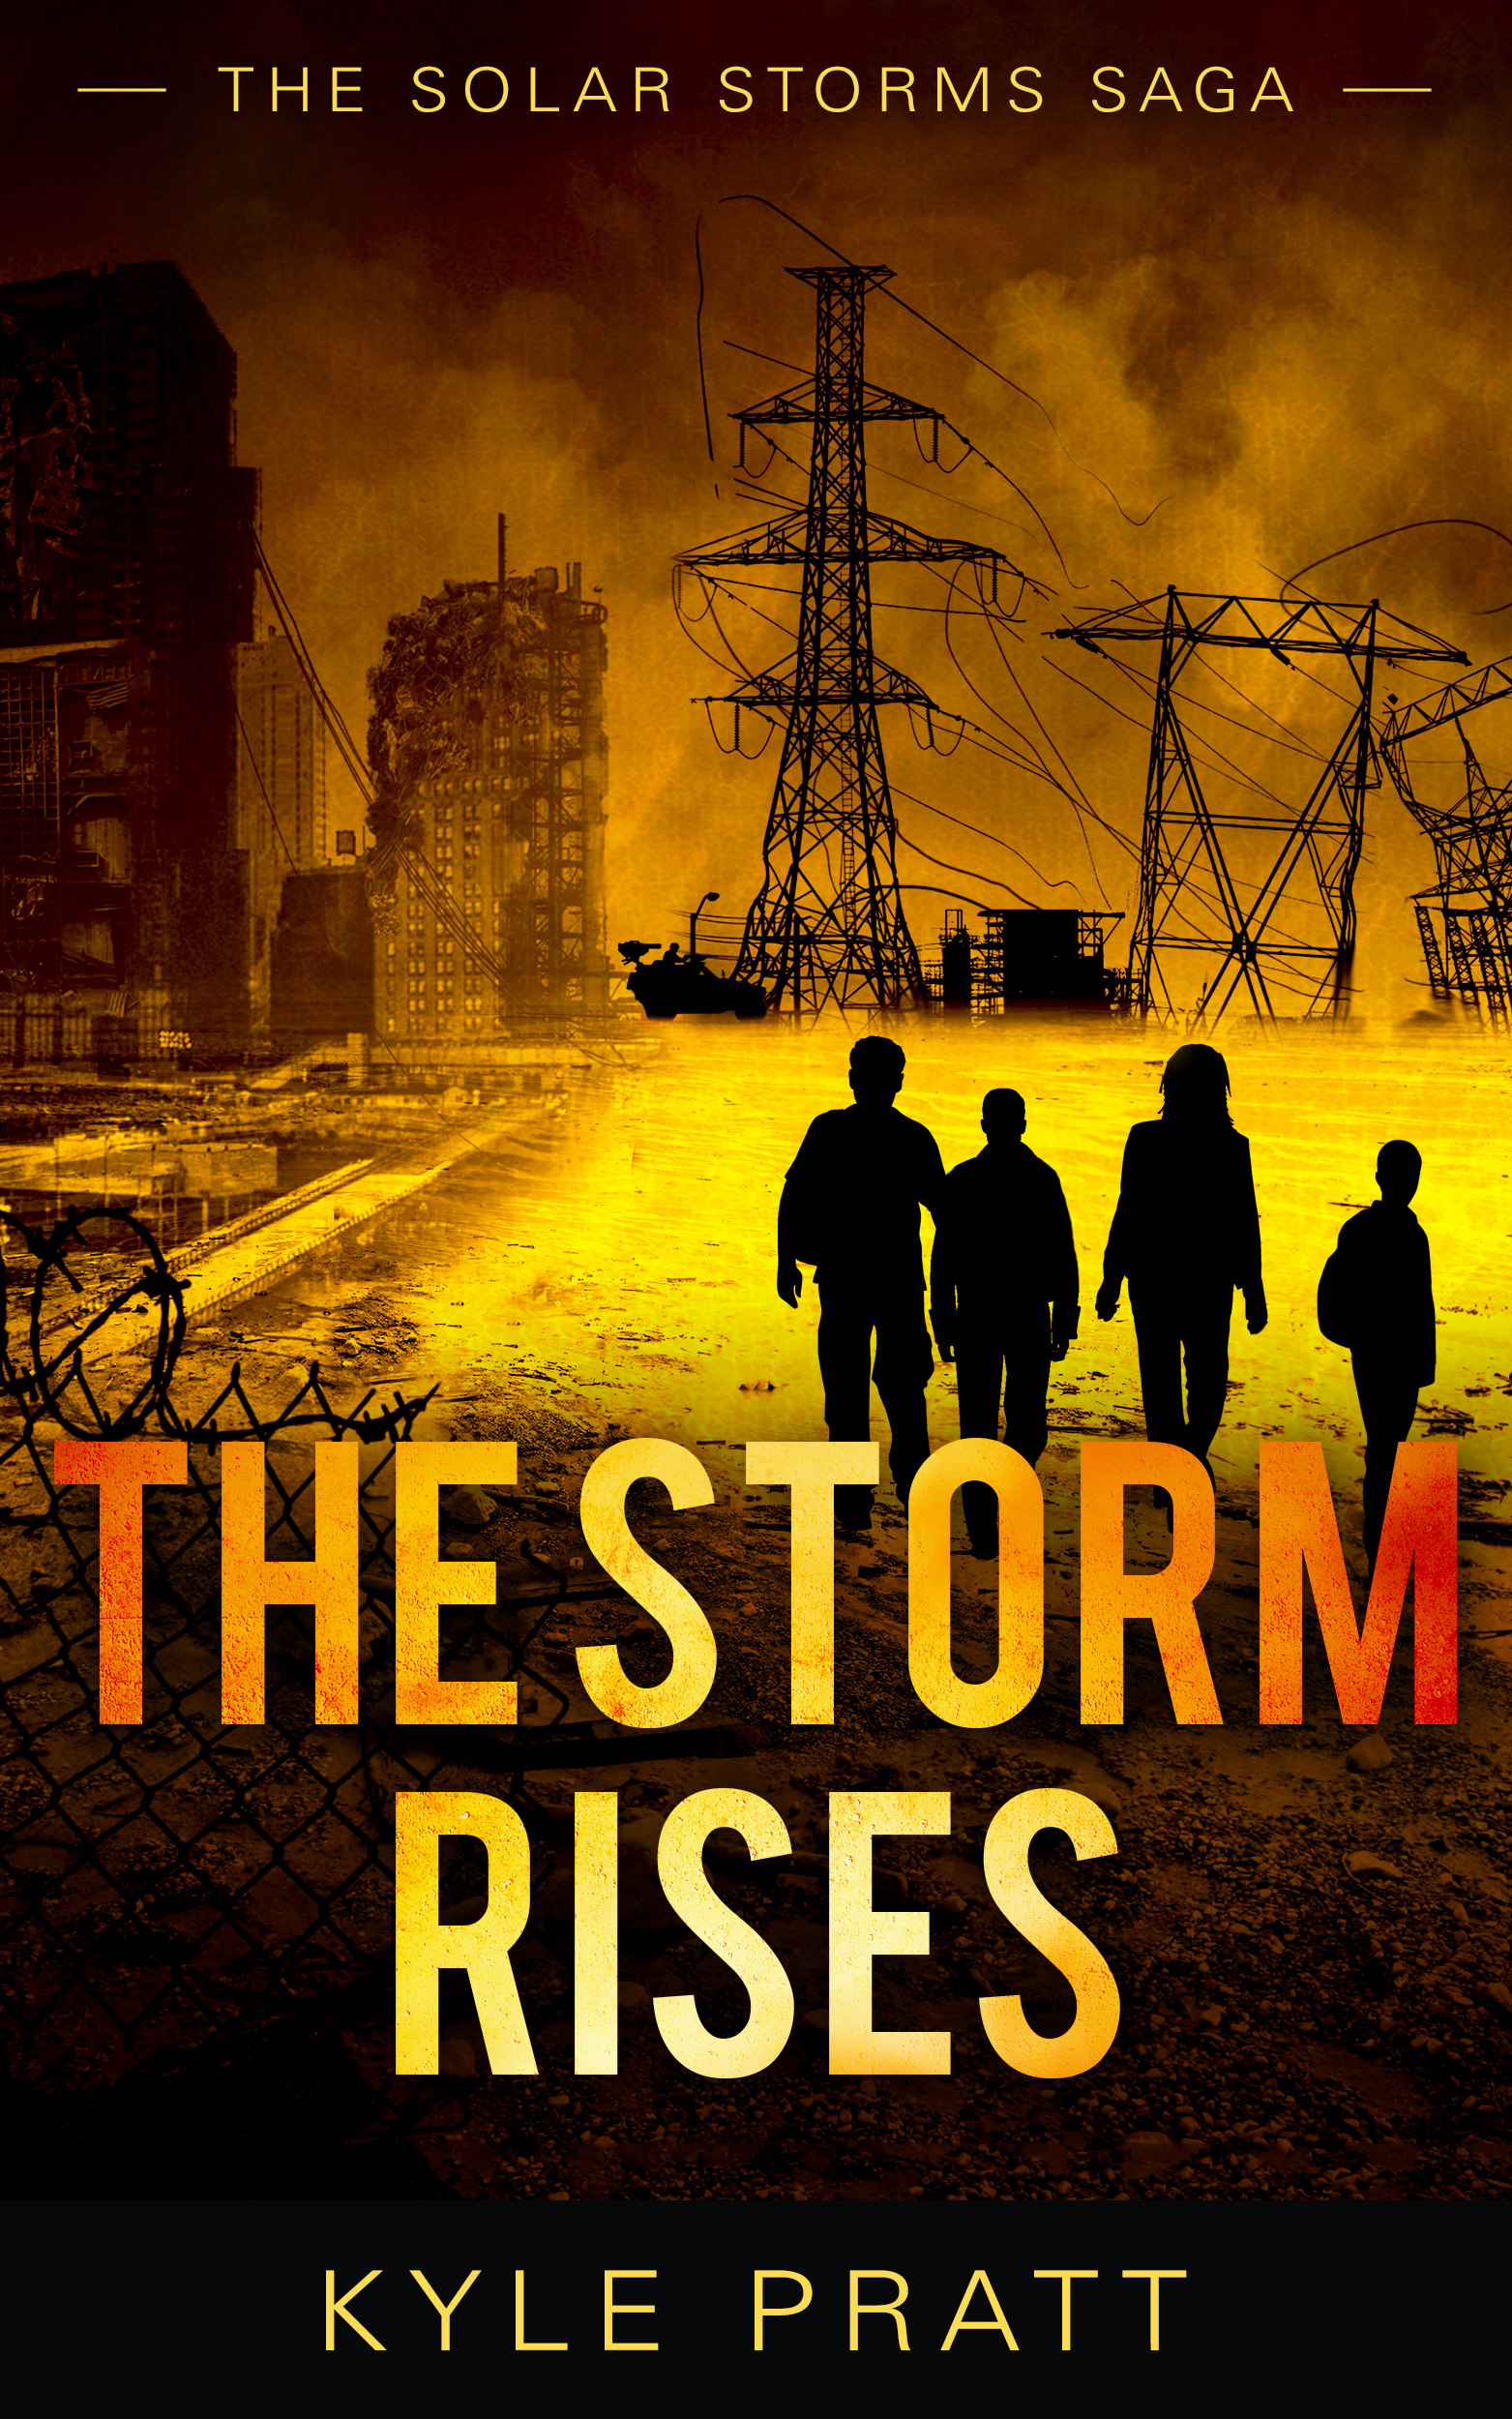 The Storm Rises, book 0, the introduction to the Solar Storms Saga. The cover for Facing the Storm has not yet been designed.